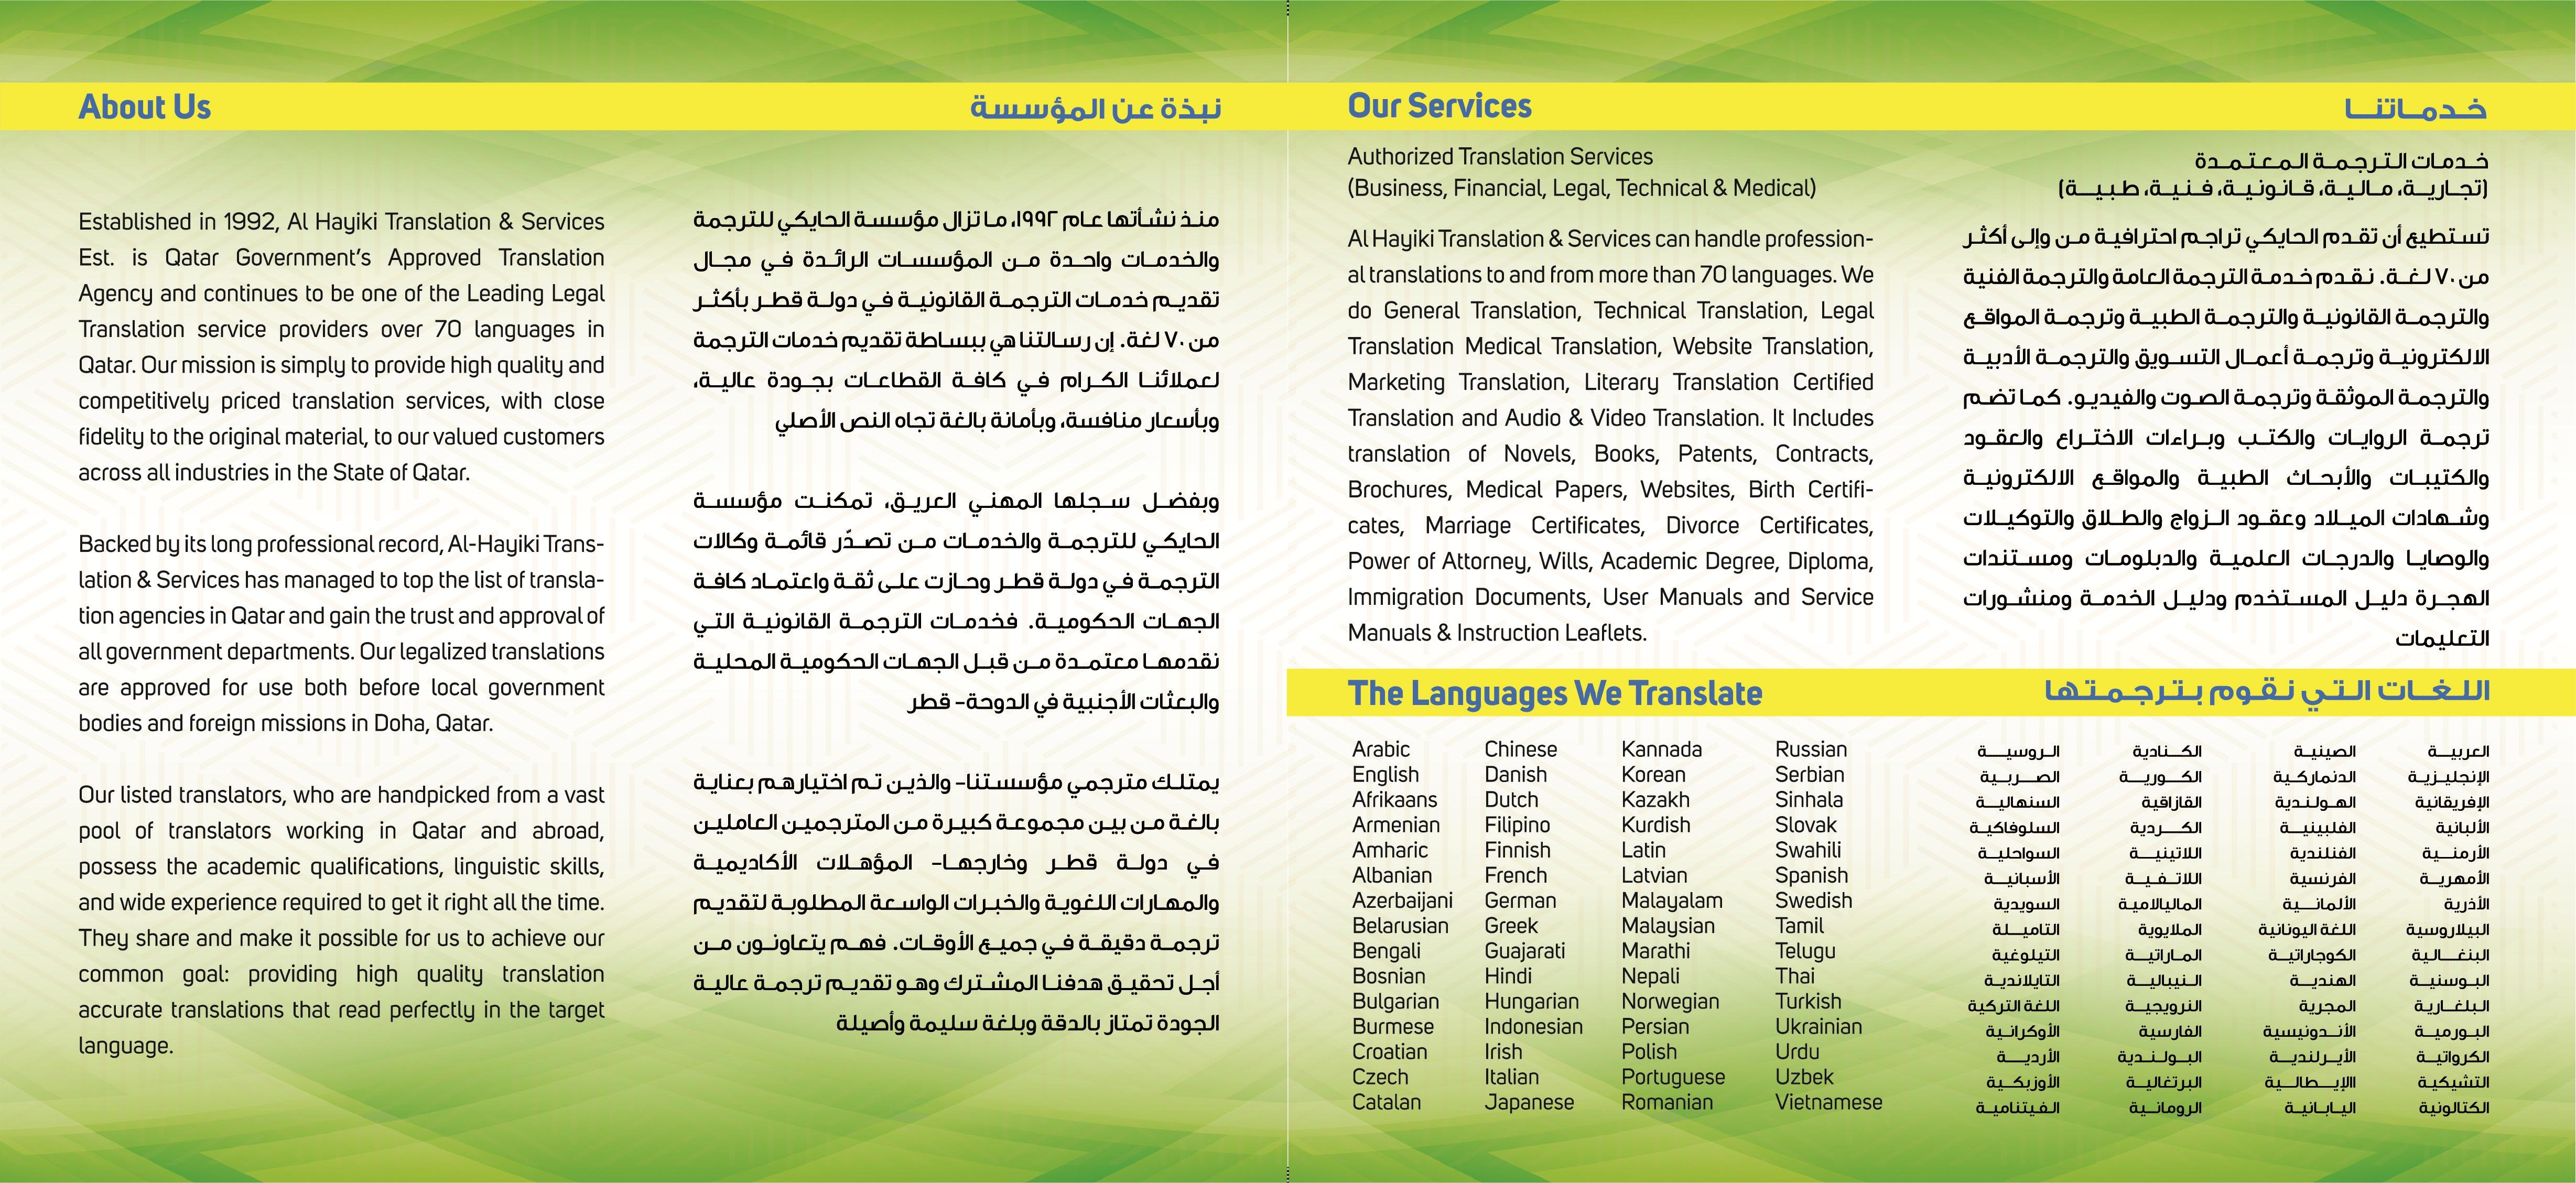 AUTHORIZED TRANSLATION CENTER IN QATAR (25 YEARS EXCELLENCE IN